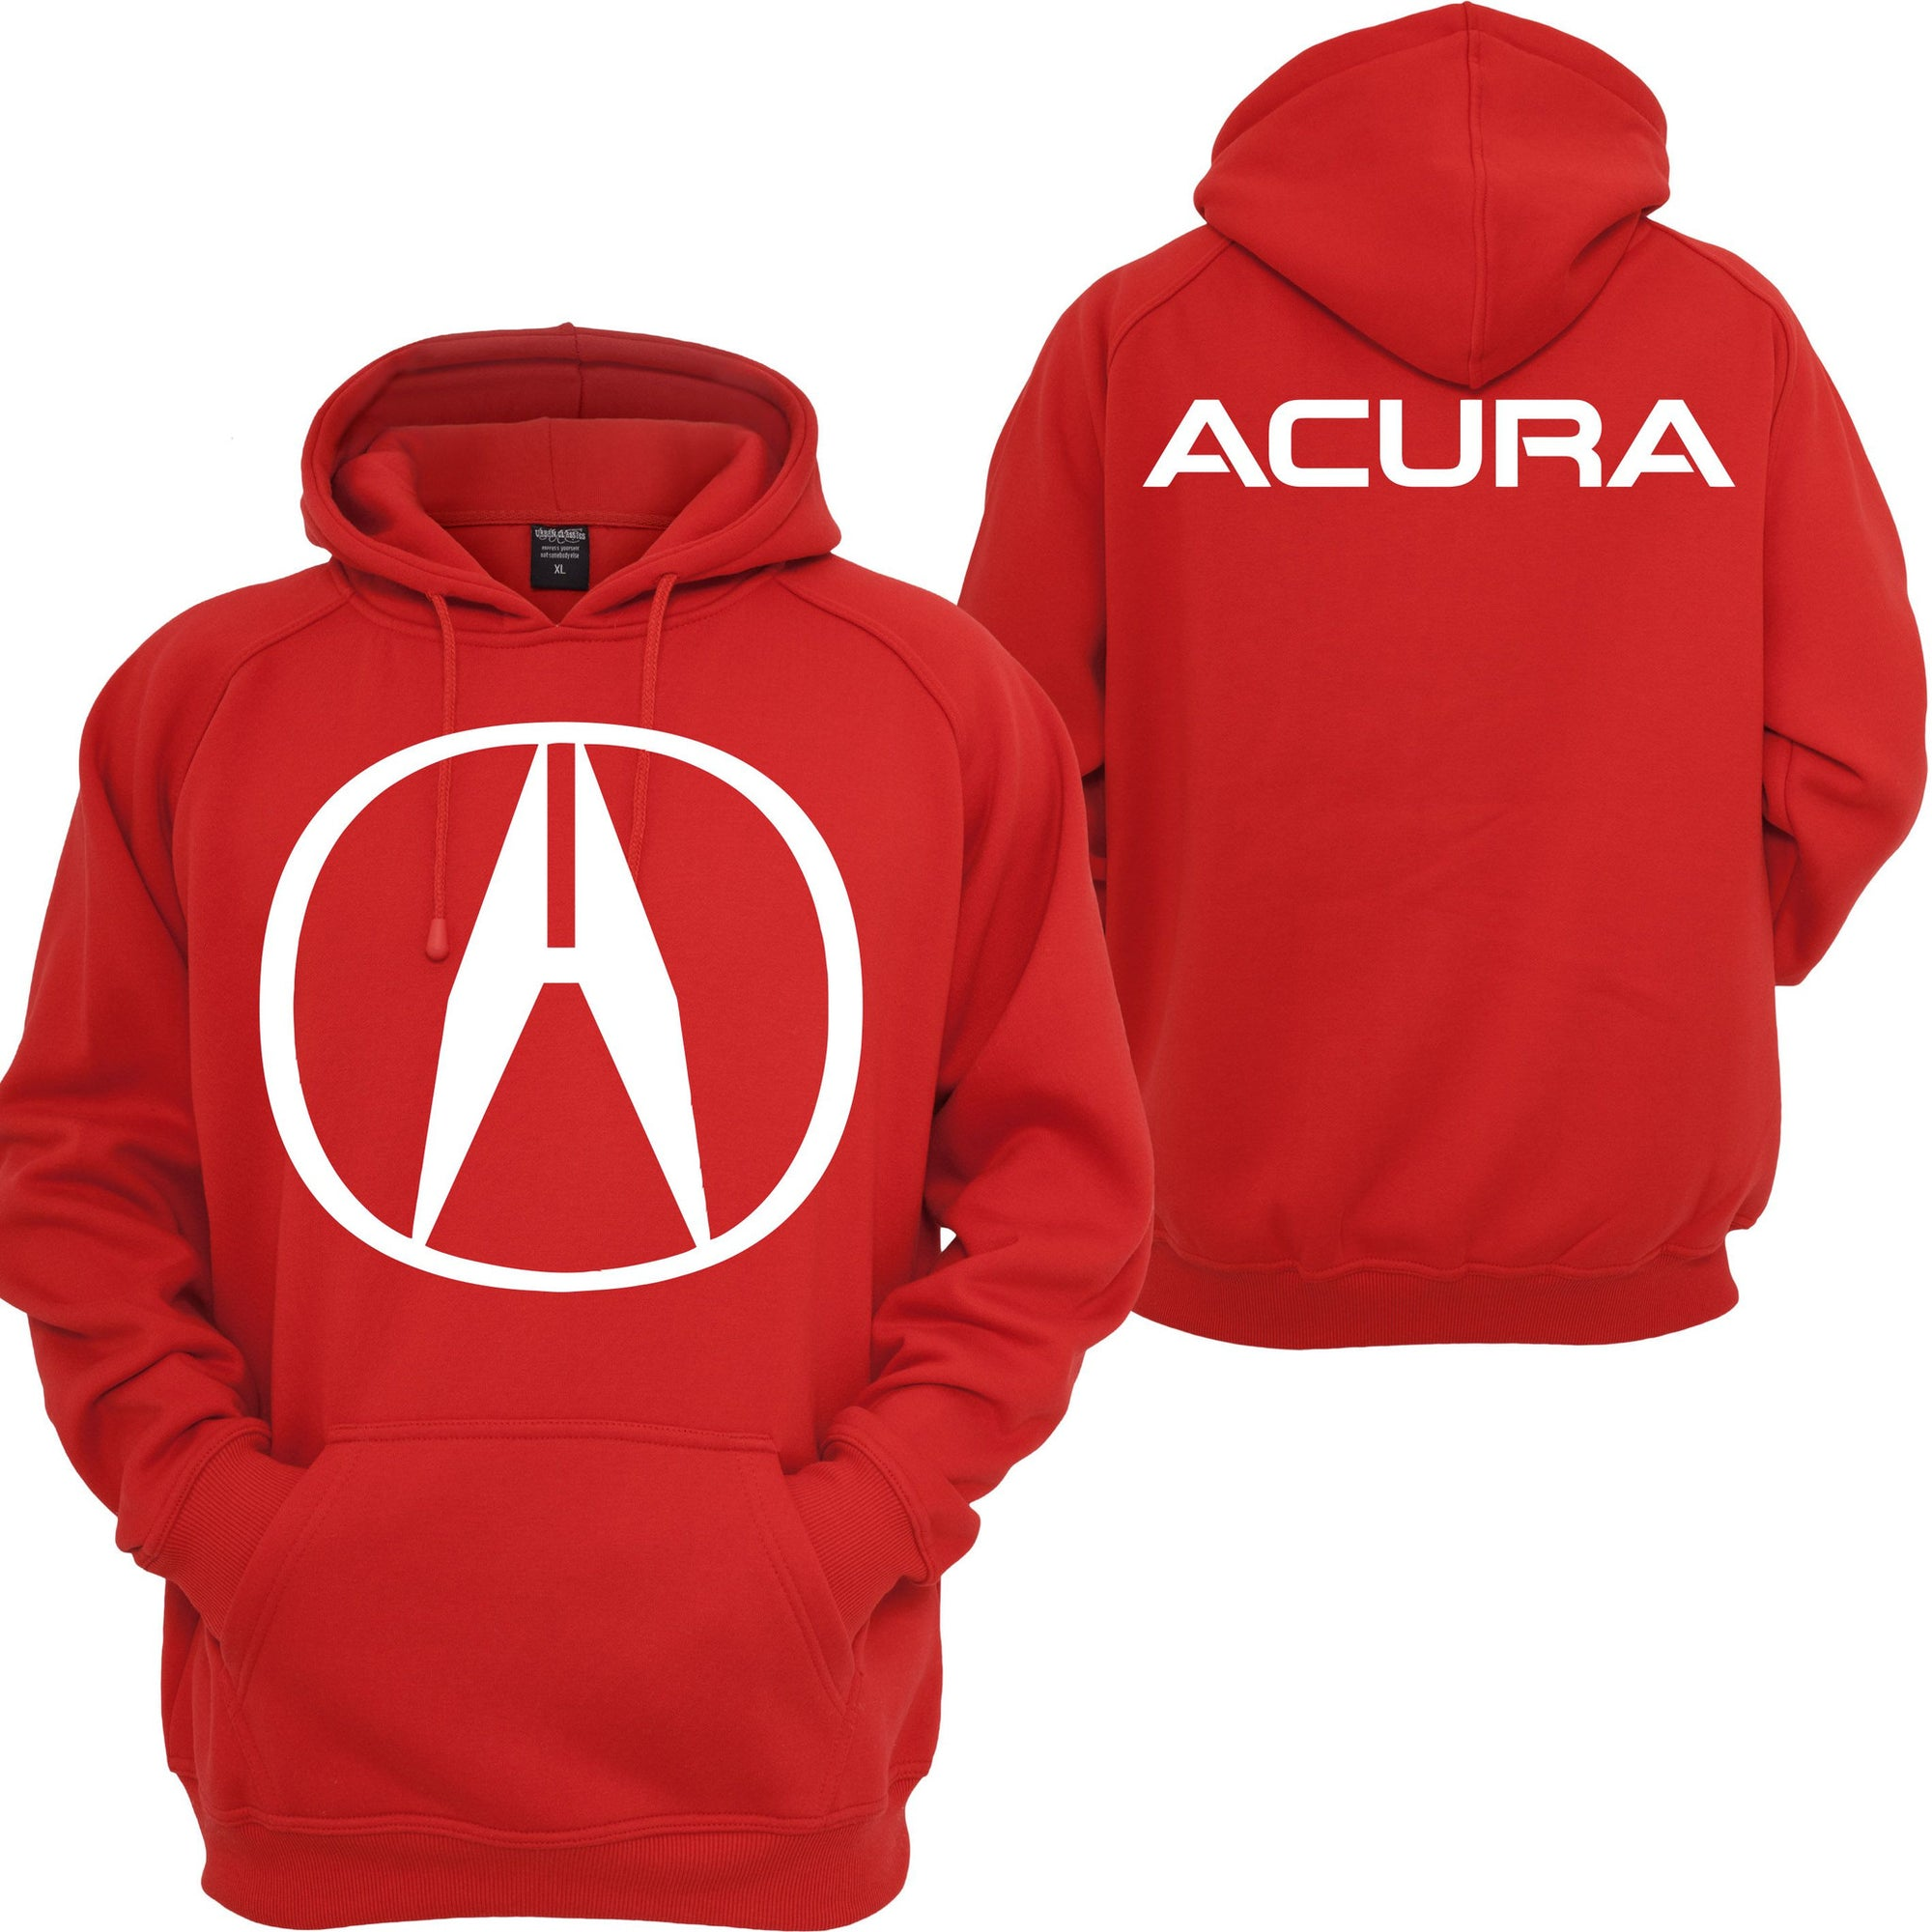 Acura Hoodie JDM Boost Turbo Lexus Honda Drift Race Cars